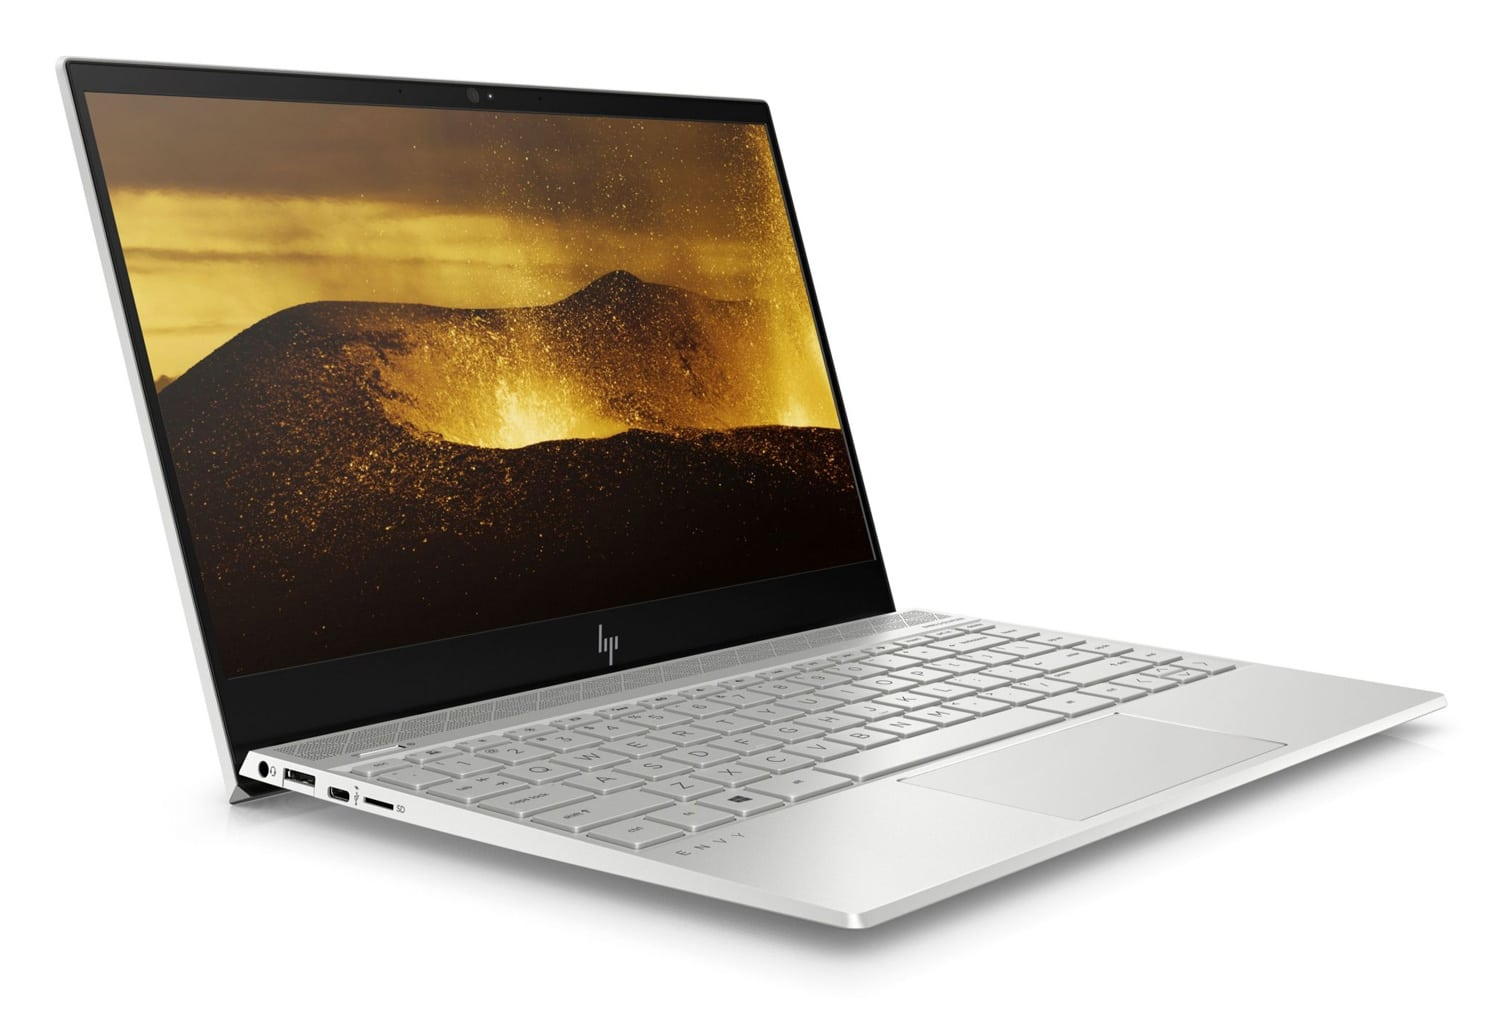 HP Envy 13-ah1010nf, 13 pouces productif SSD 1 To (1444€)